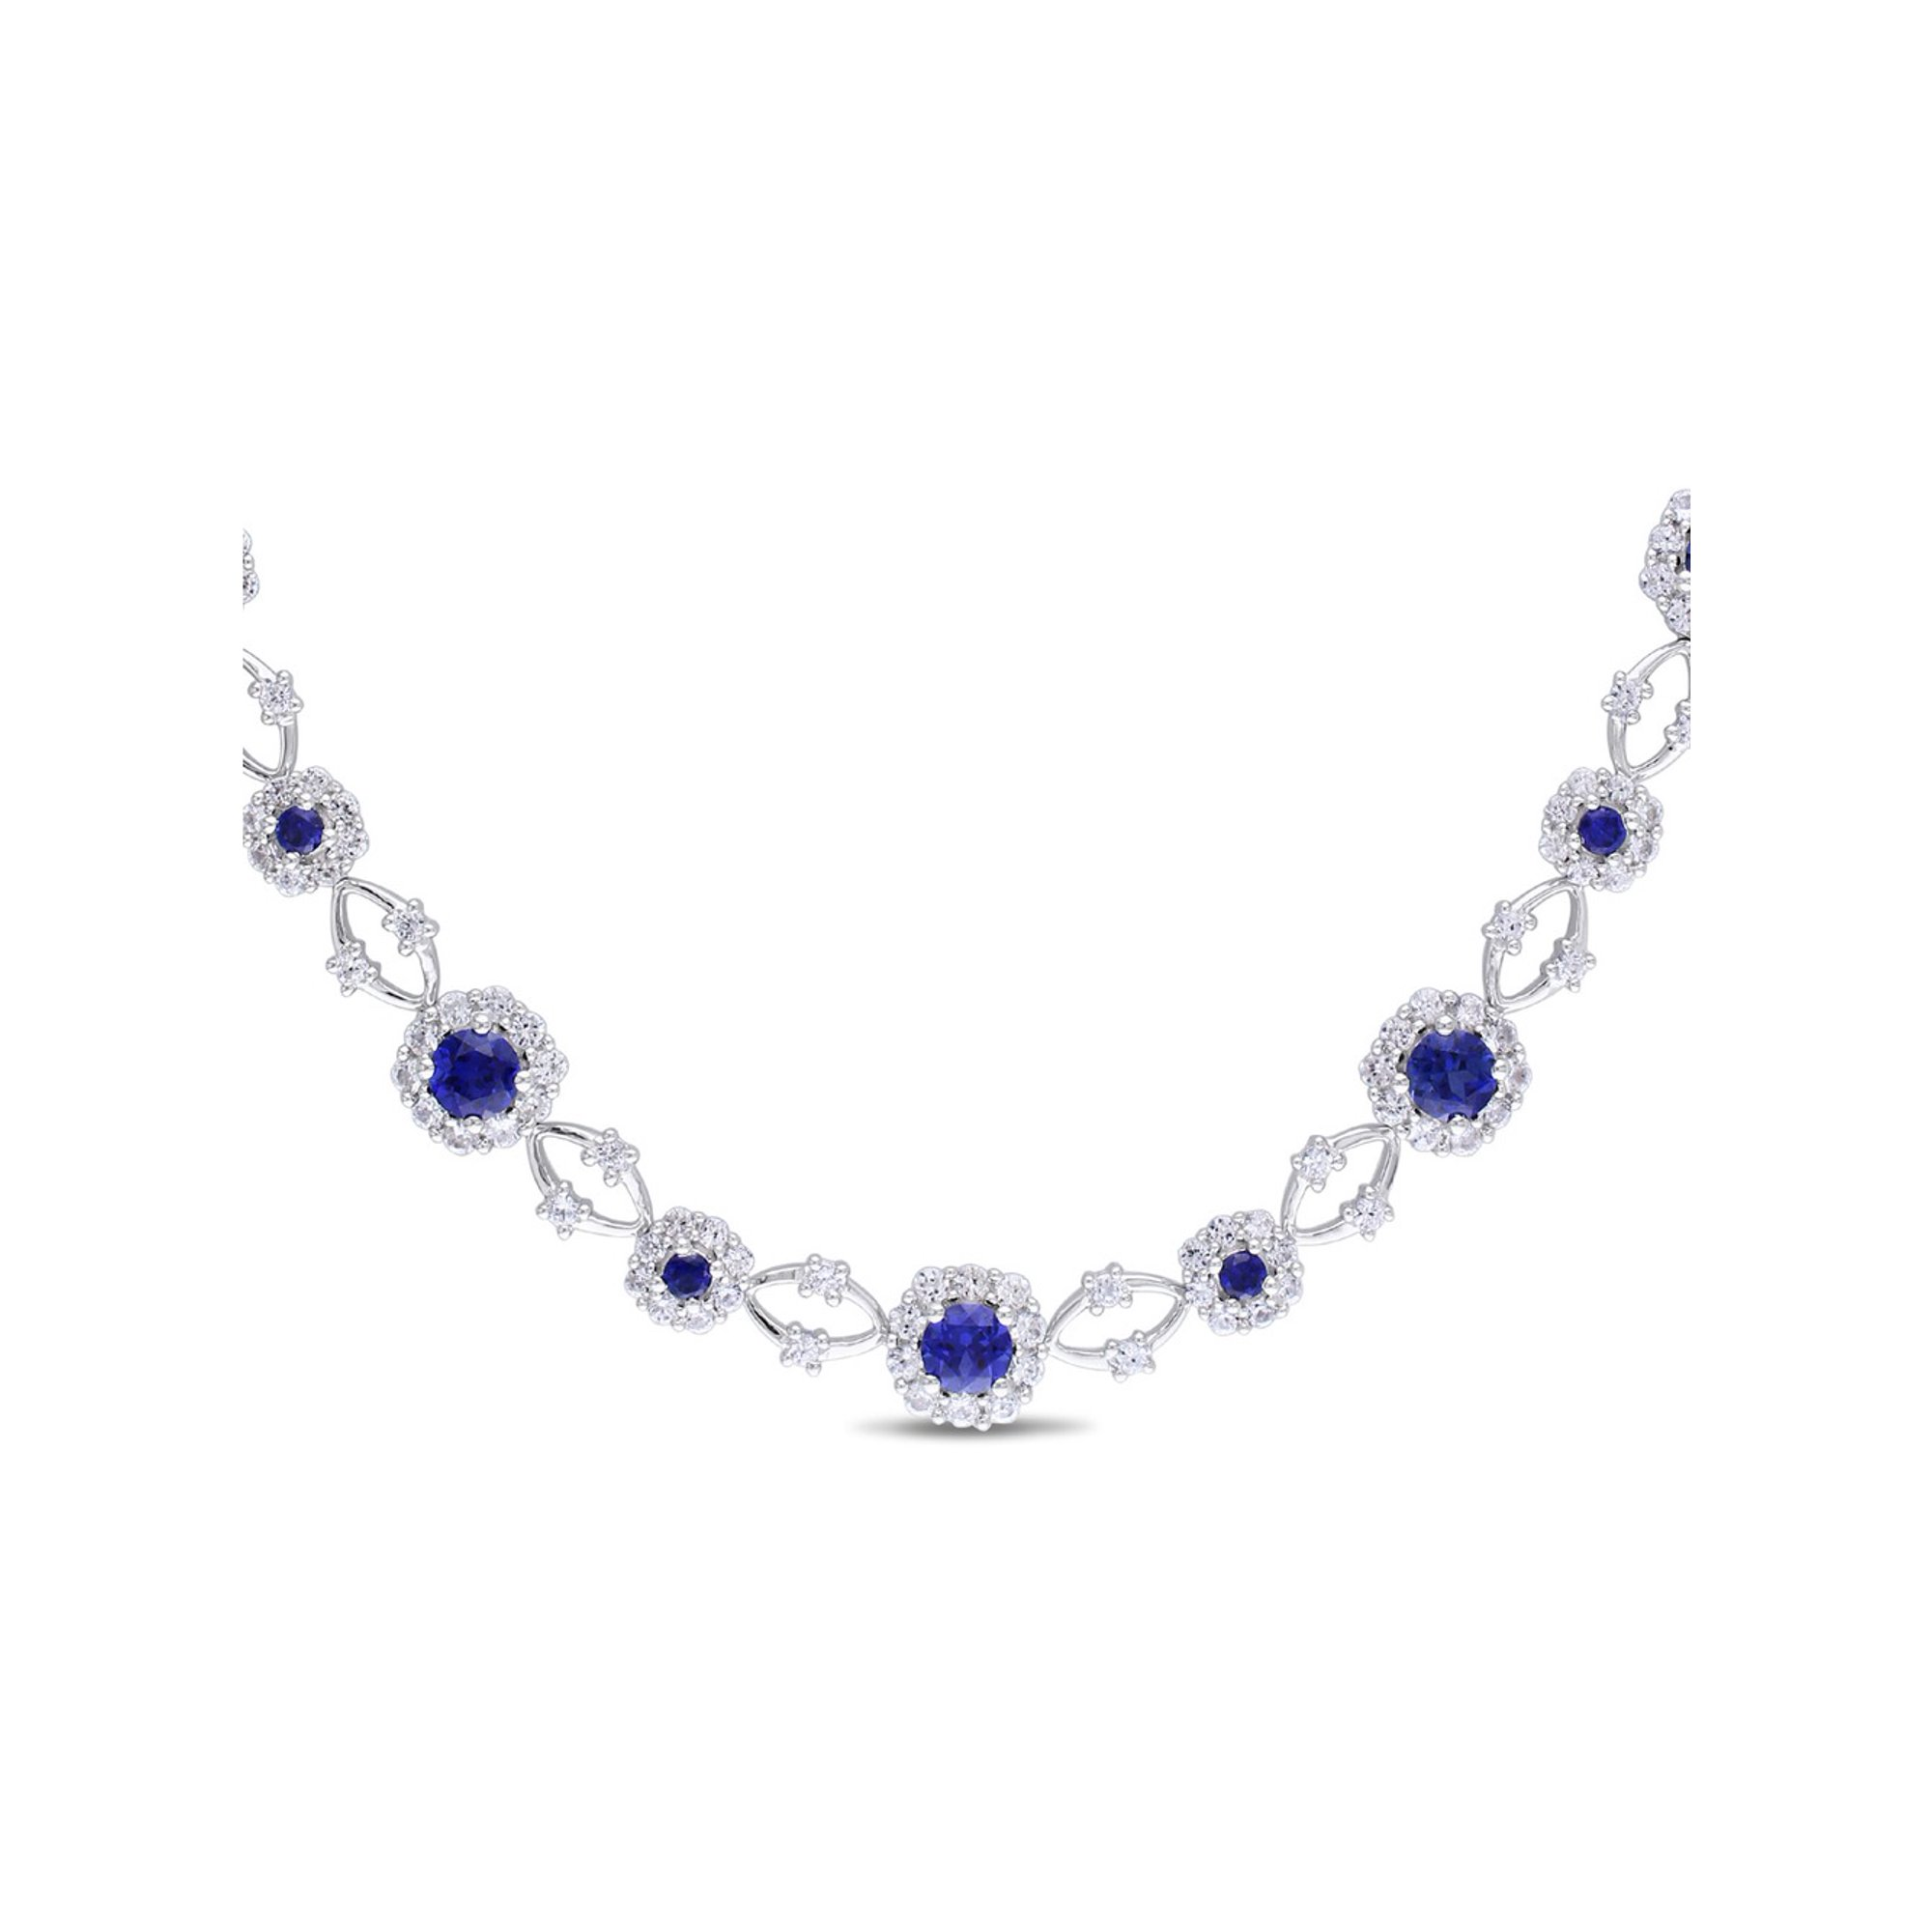 Created Synthetic Blue and White Sapphire 9 00 Carat (ctw